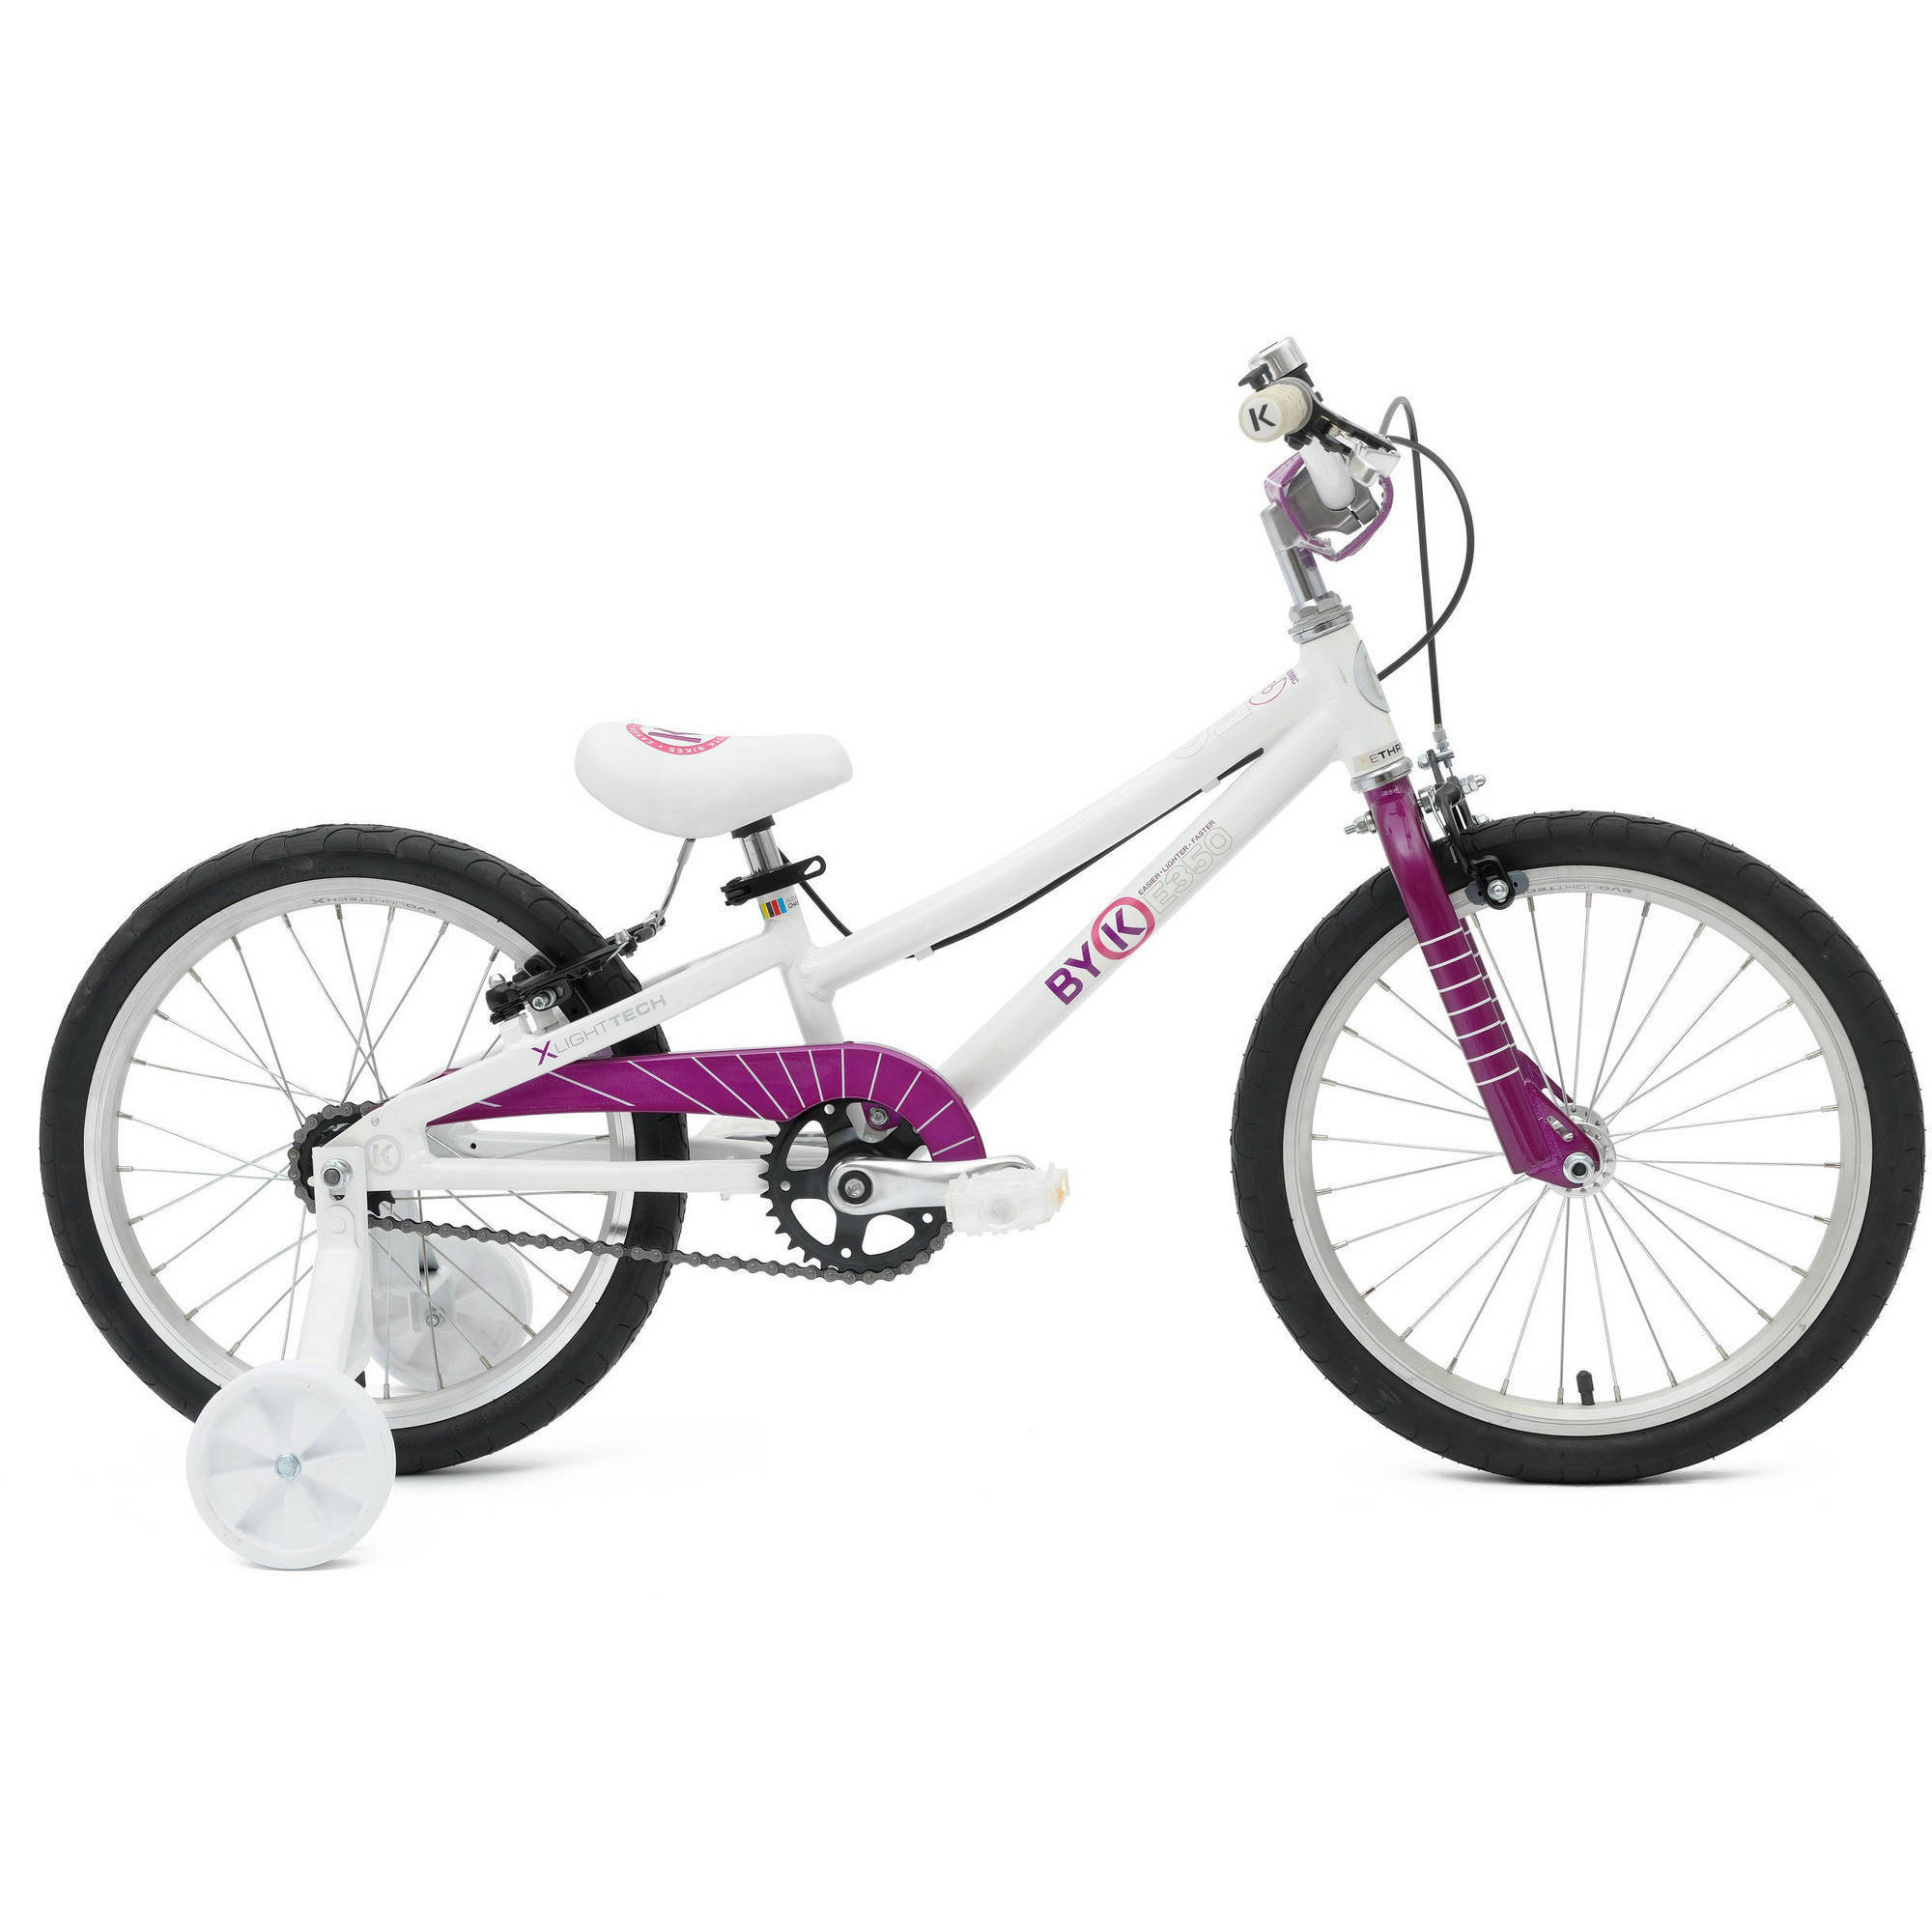 ByK E-350 18 inch Kids Bicycle